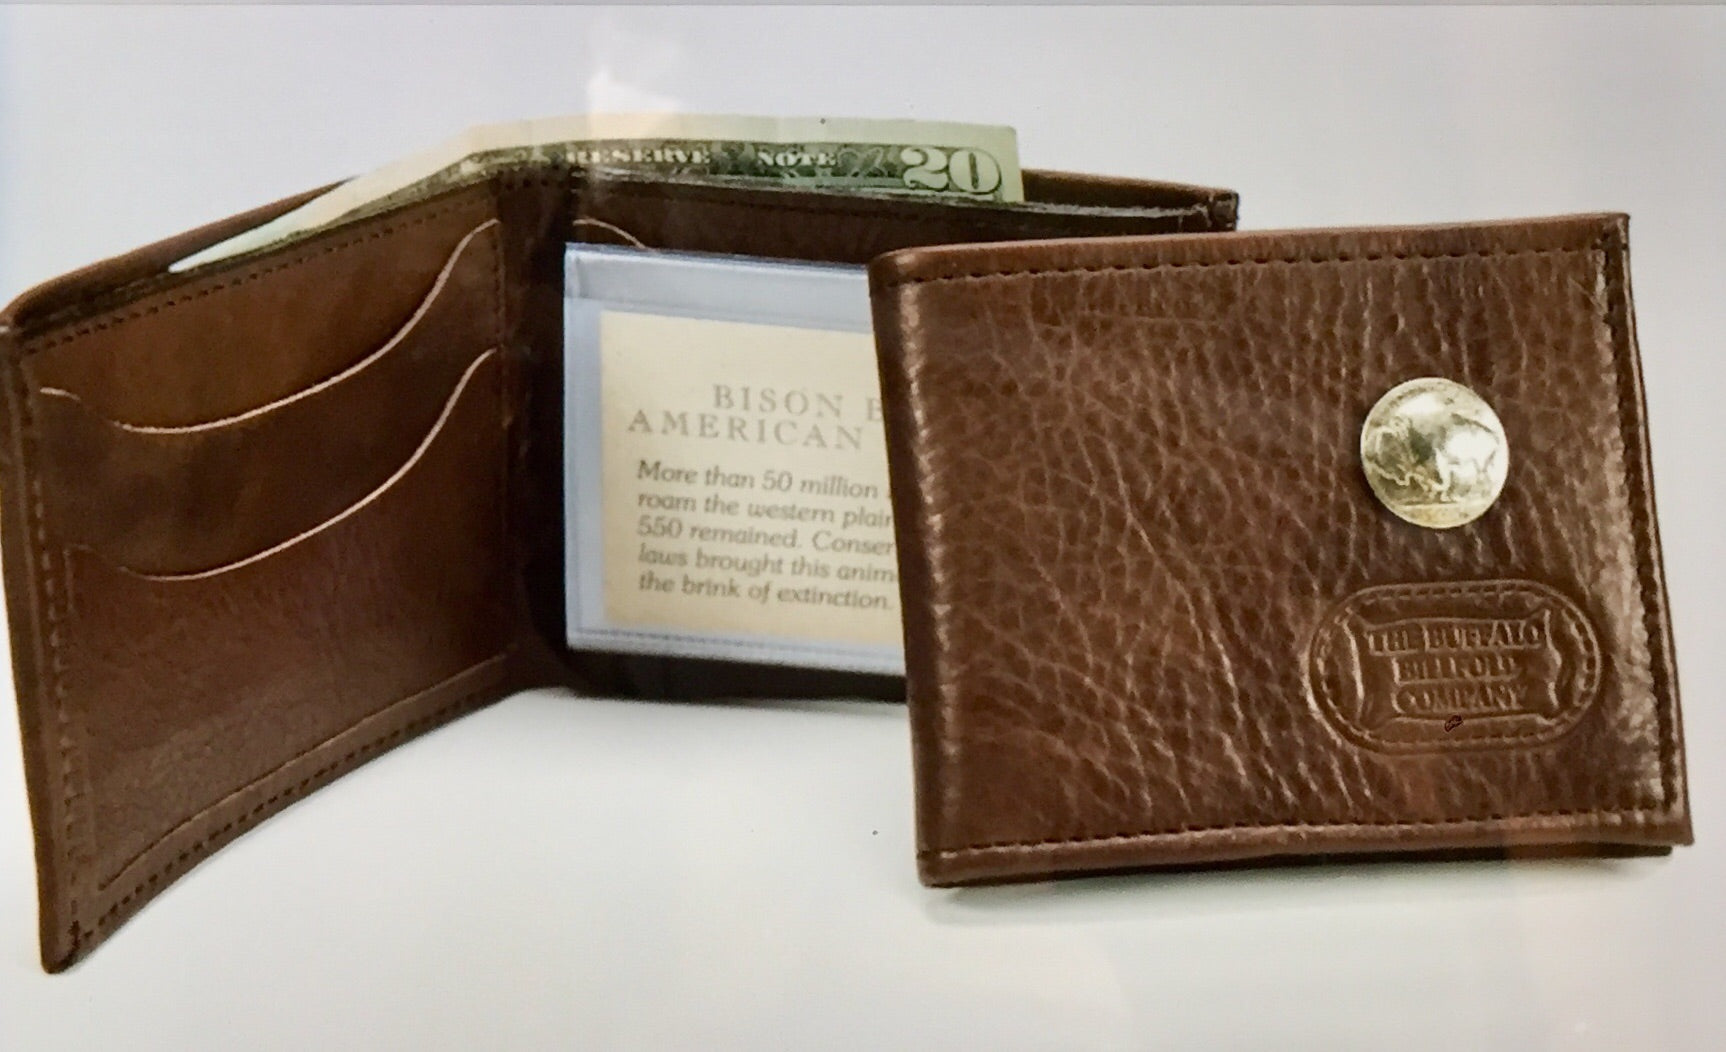 Bifold Bison Wallet / Billfold with Buffalo Nickel